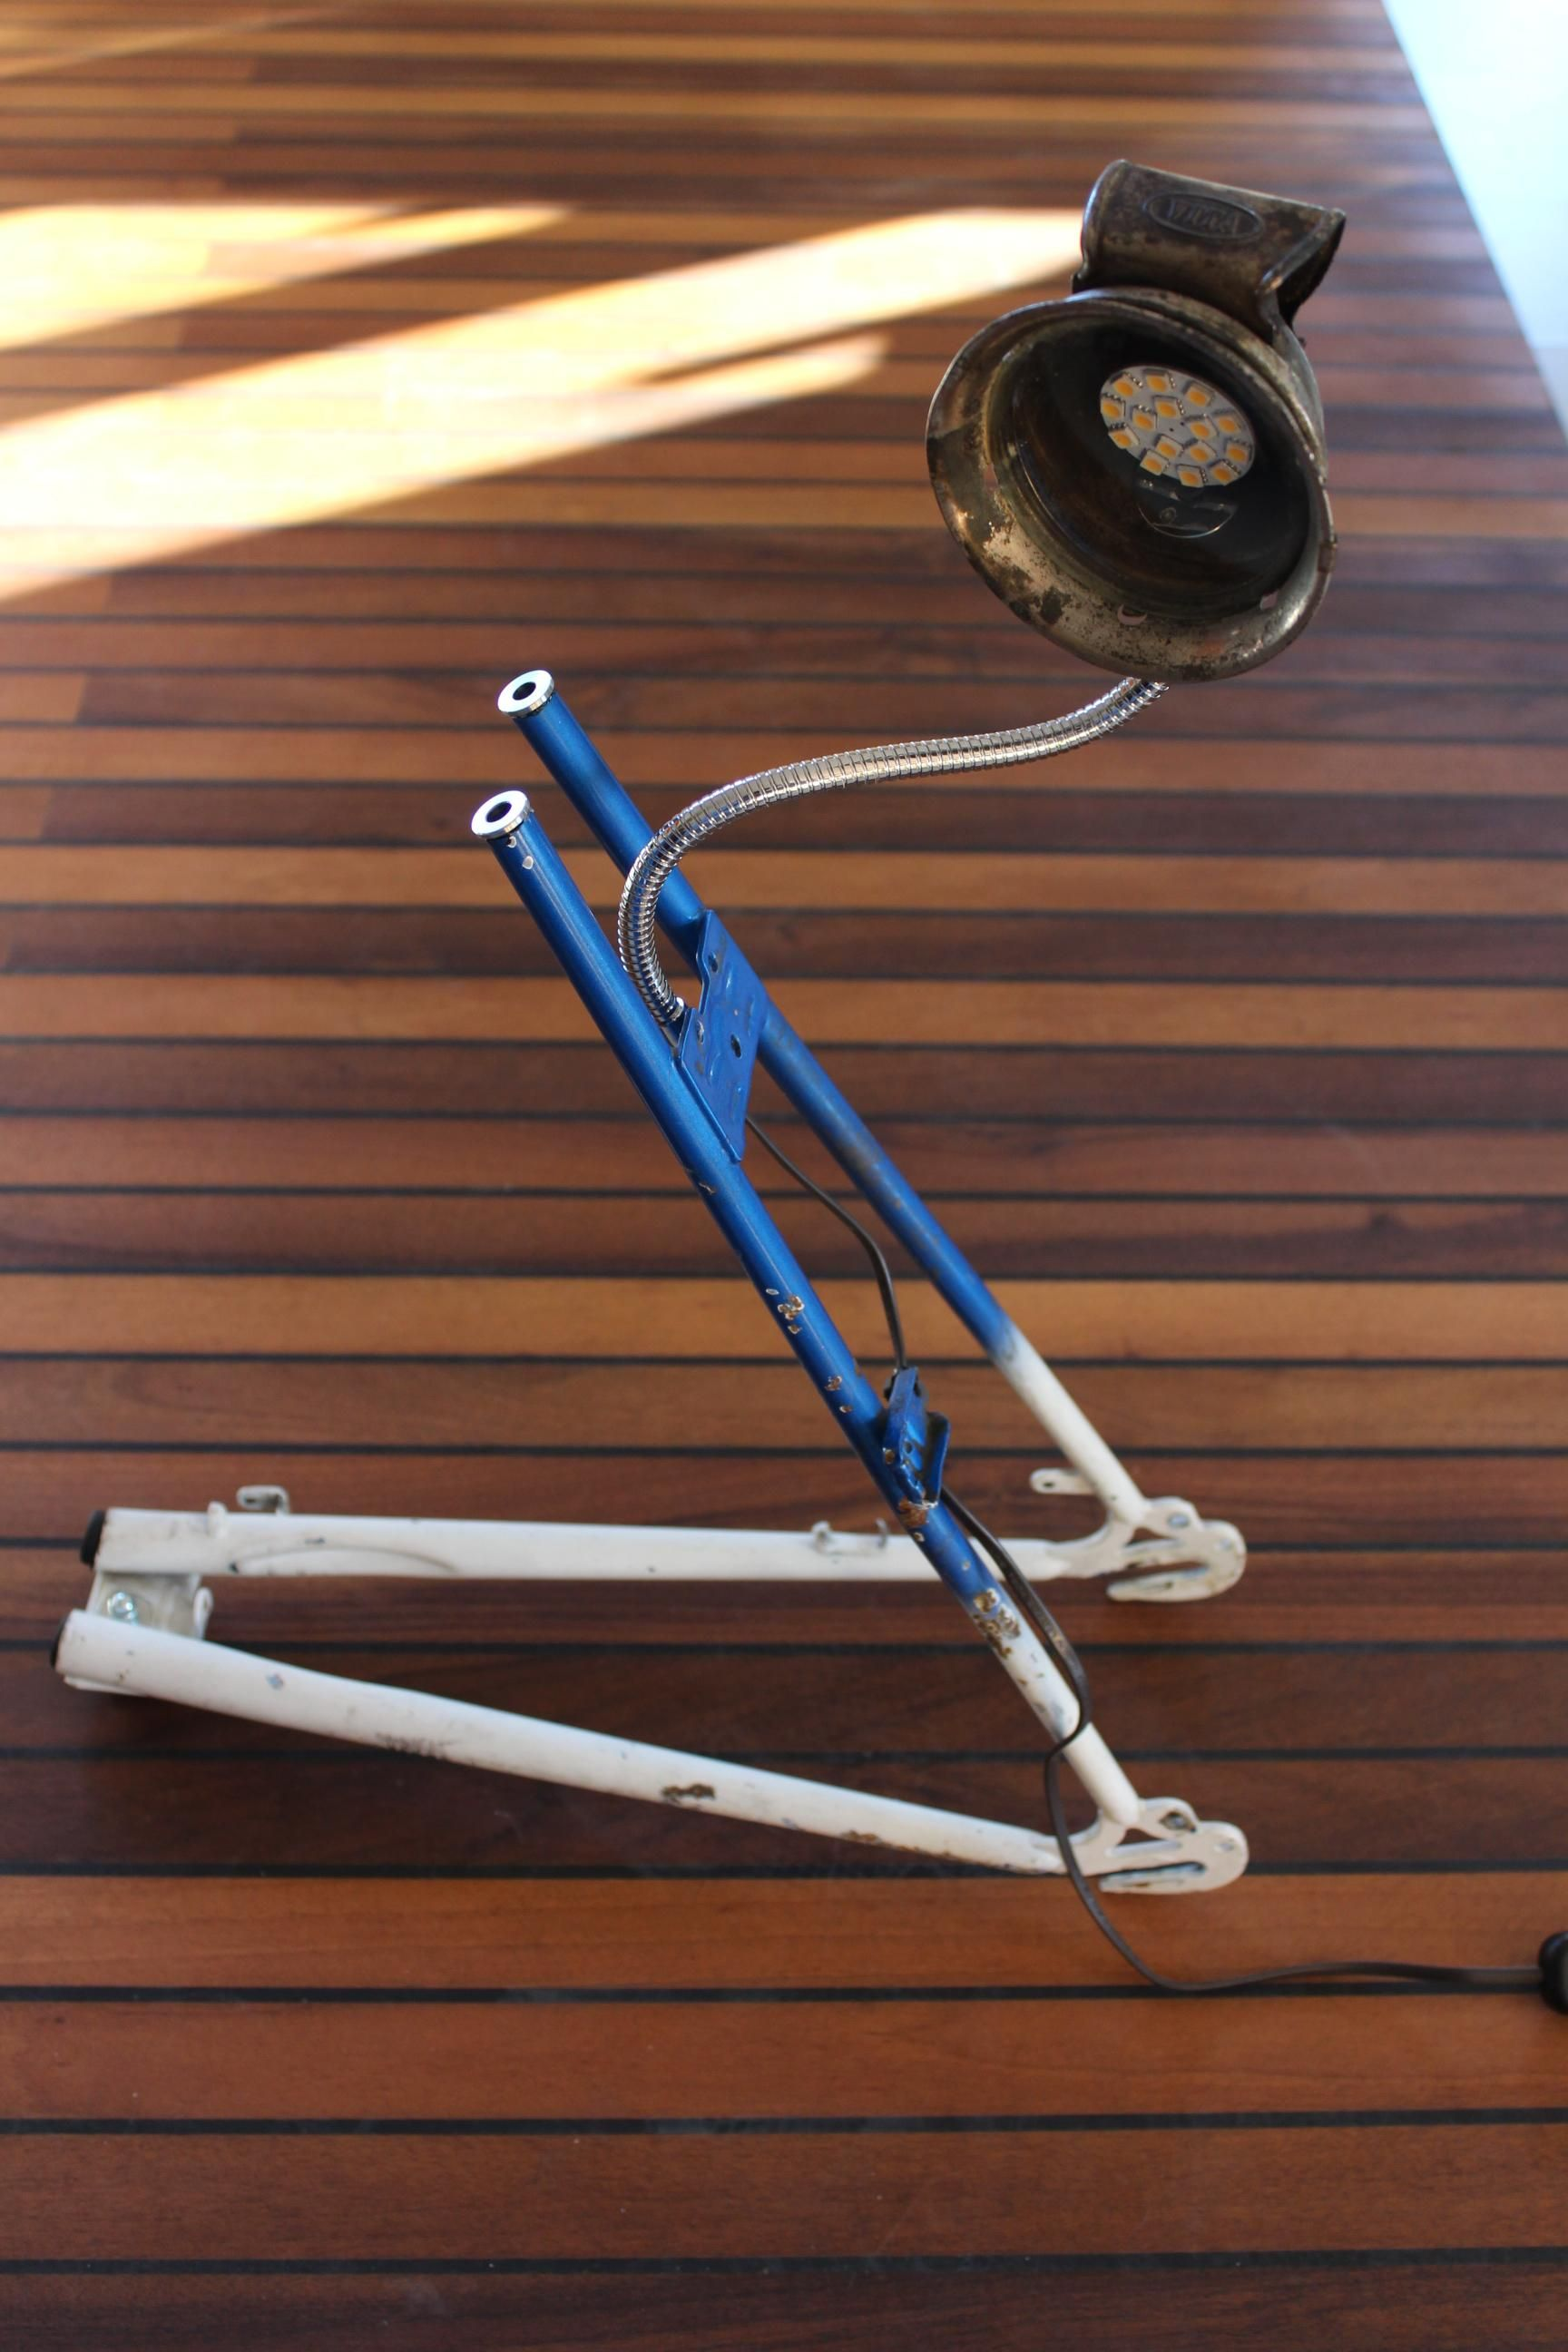 Upcycled bike frame, now desk LED lamp. More on upcycle-it.ch ...